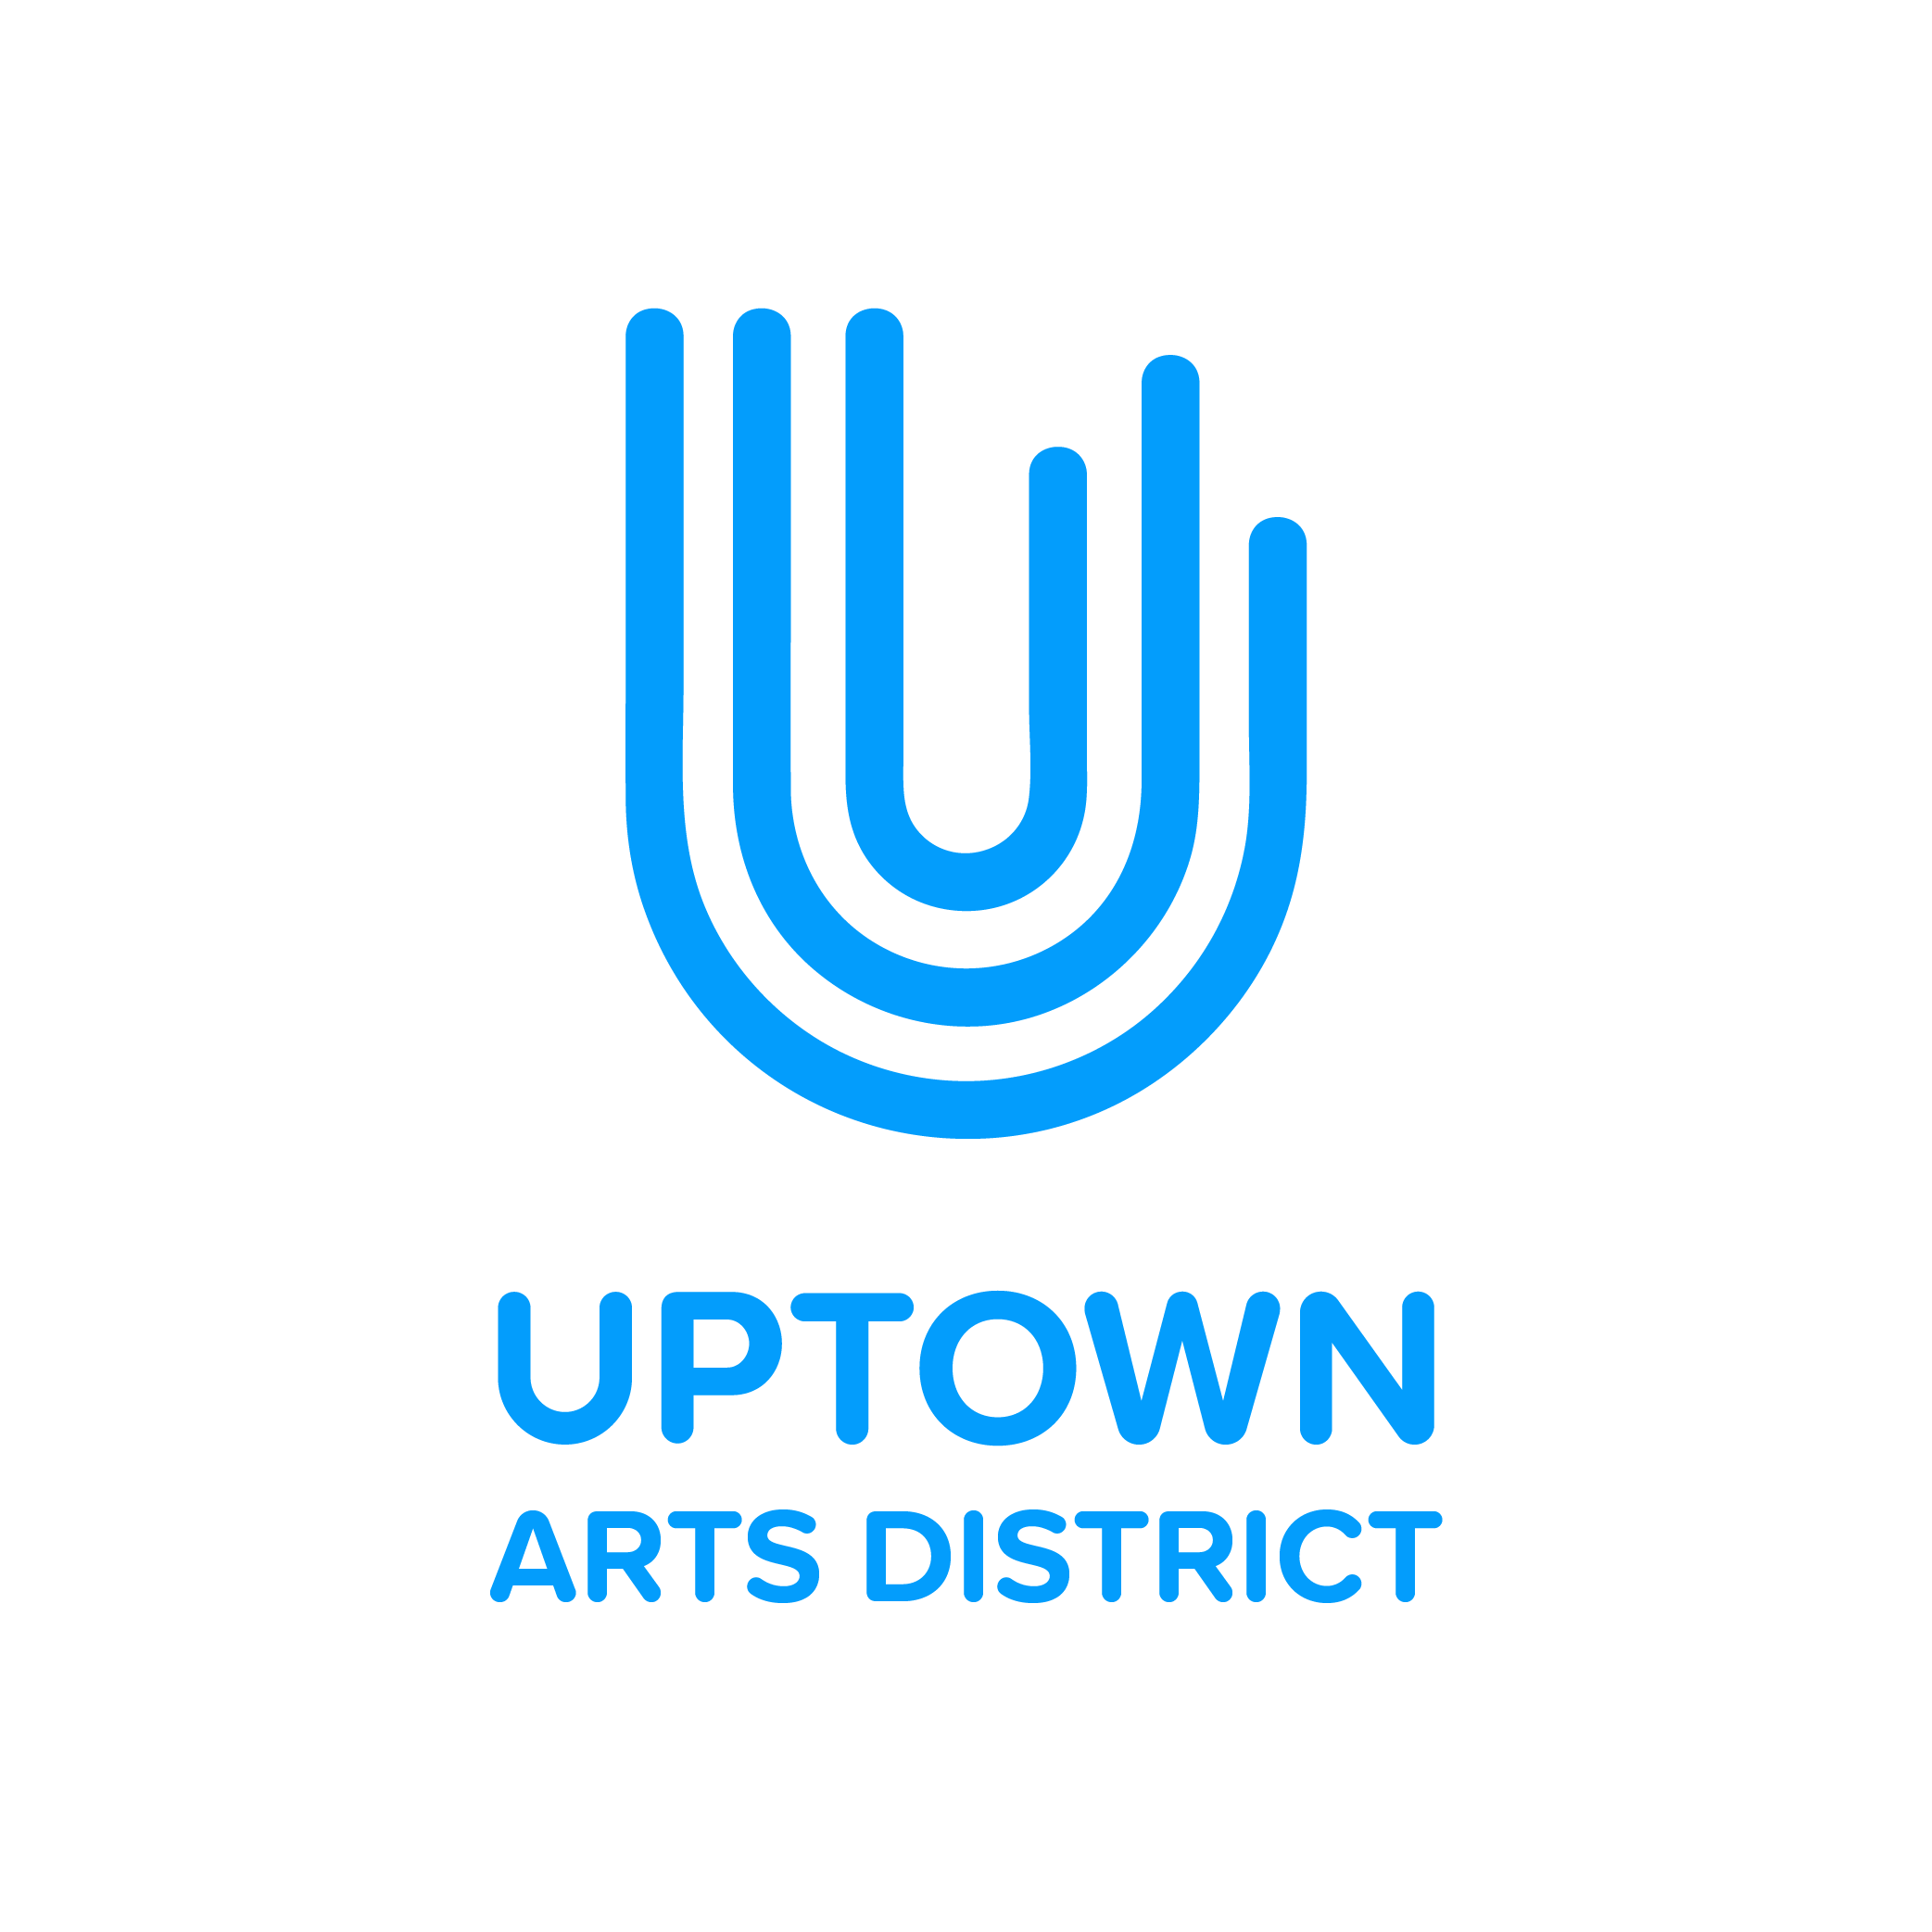 Logo statement - Uptown is vibrant, creative, and inclusive. This logo is inspired by a brush stroke and music tabs. Each line represents creativity, community, humanity and how all these elements work together in harmony. This logo is paired with a custom typeface fit for Uptown.